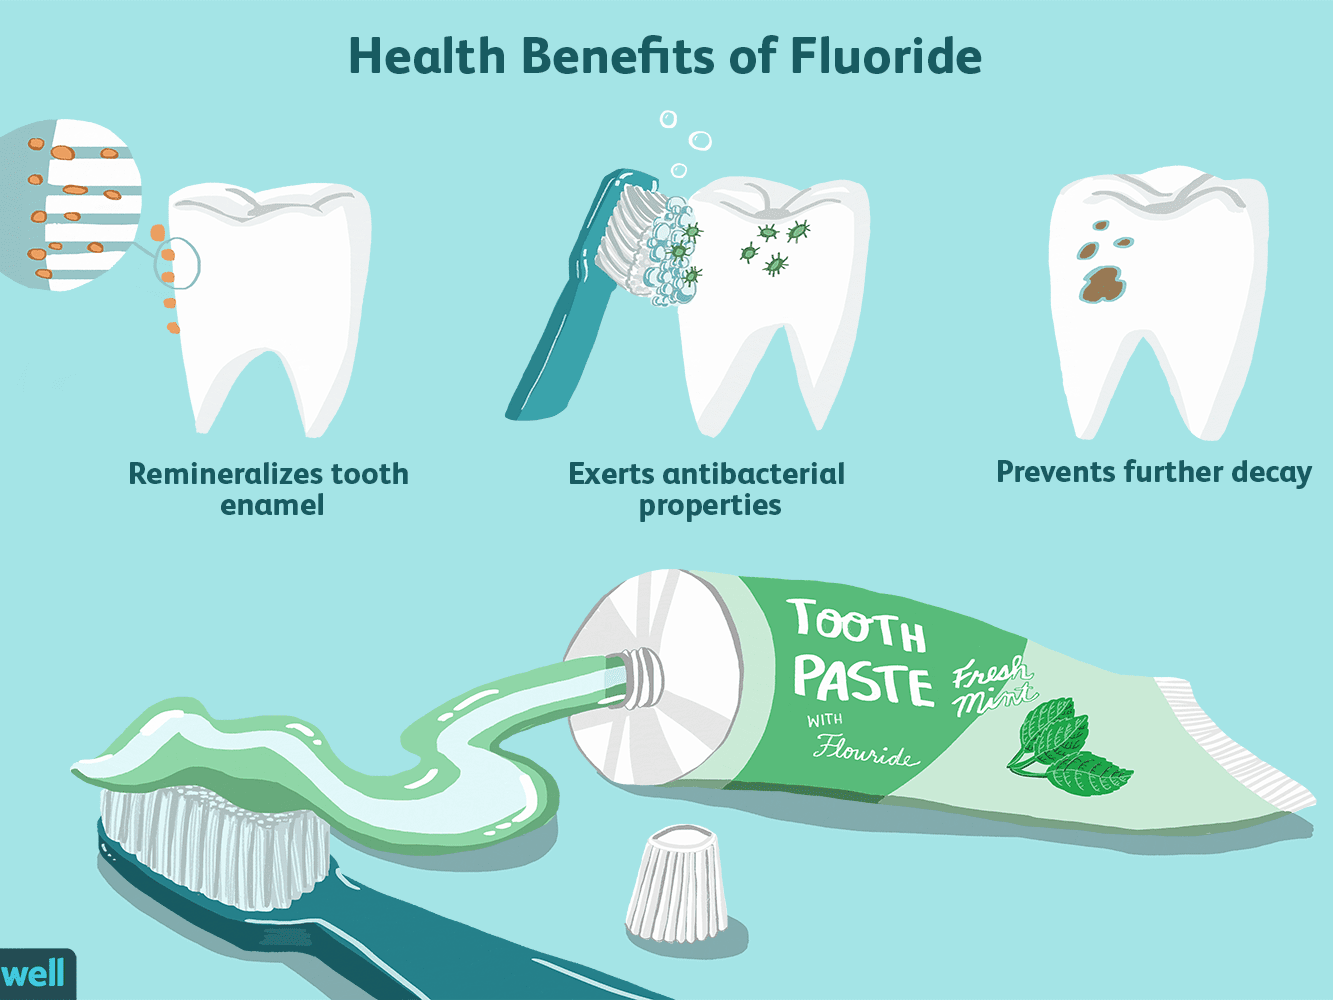 Benefits and Safety of Fluoride Toothpaste